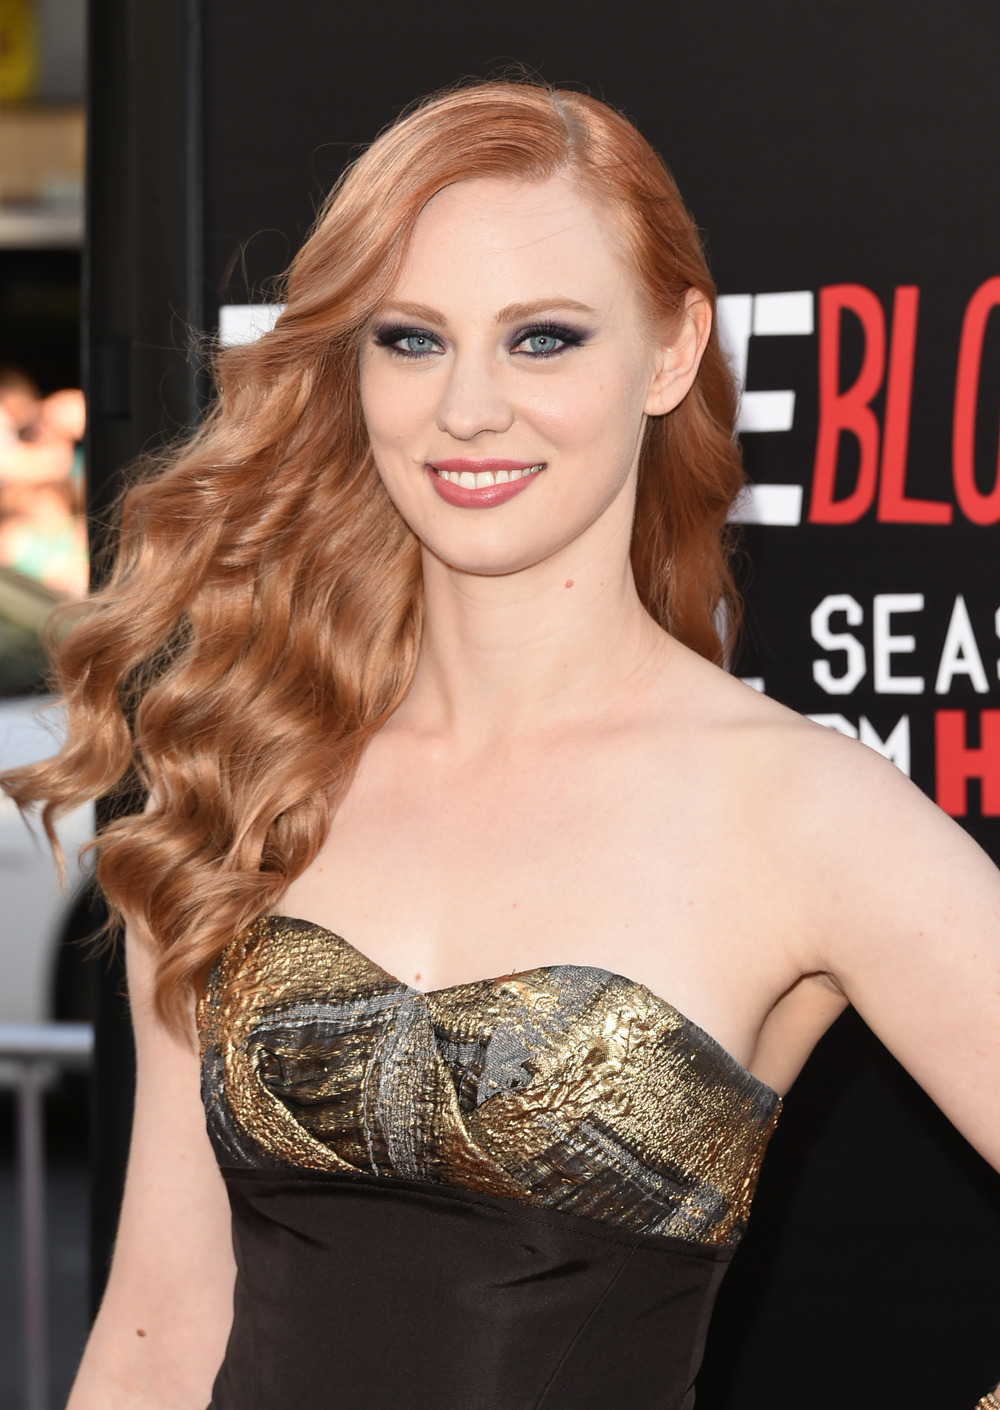 True Blood's Deborah Ann Woll Taking Over Ellen Pompeo's Daredevil Role in Netflix Series